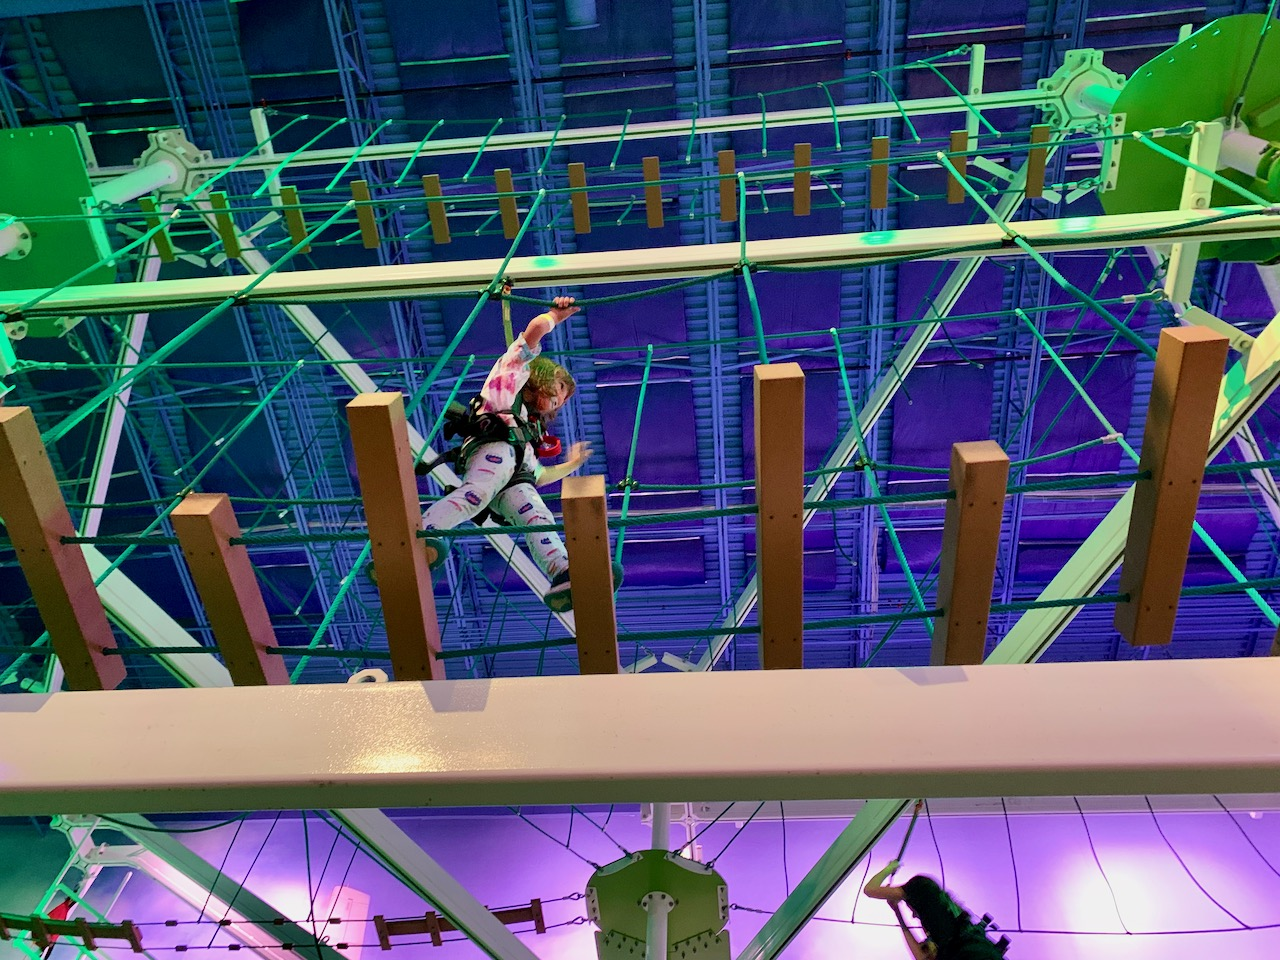 Lorelei running across the ropes course